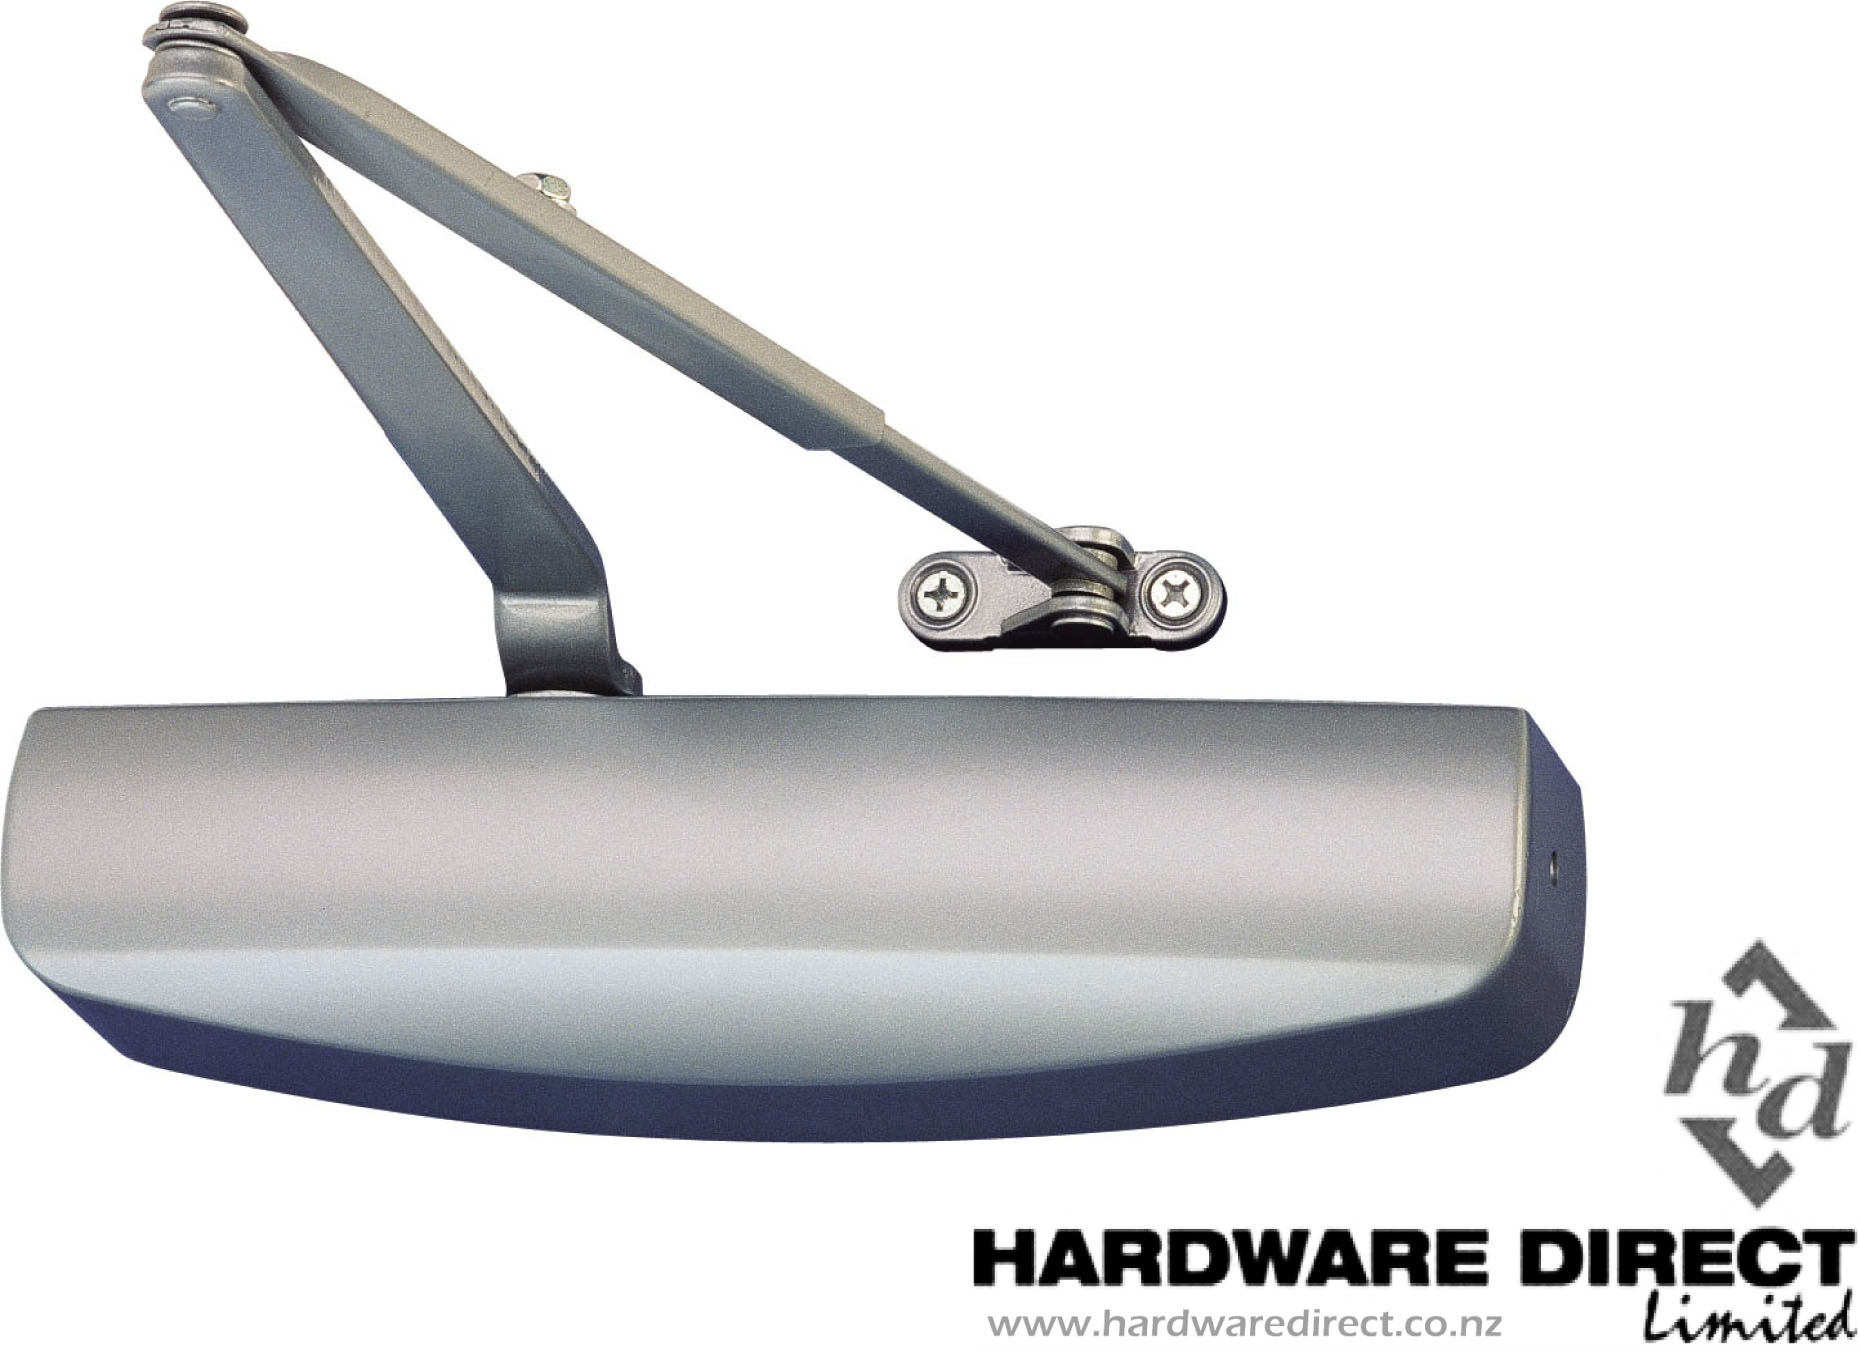 Hardware direct lcn 1461 hold open closer strength 1 6 for 1461 lcn door closer